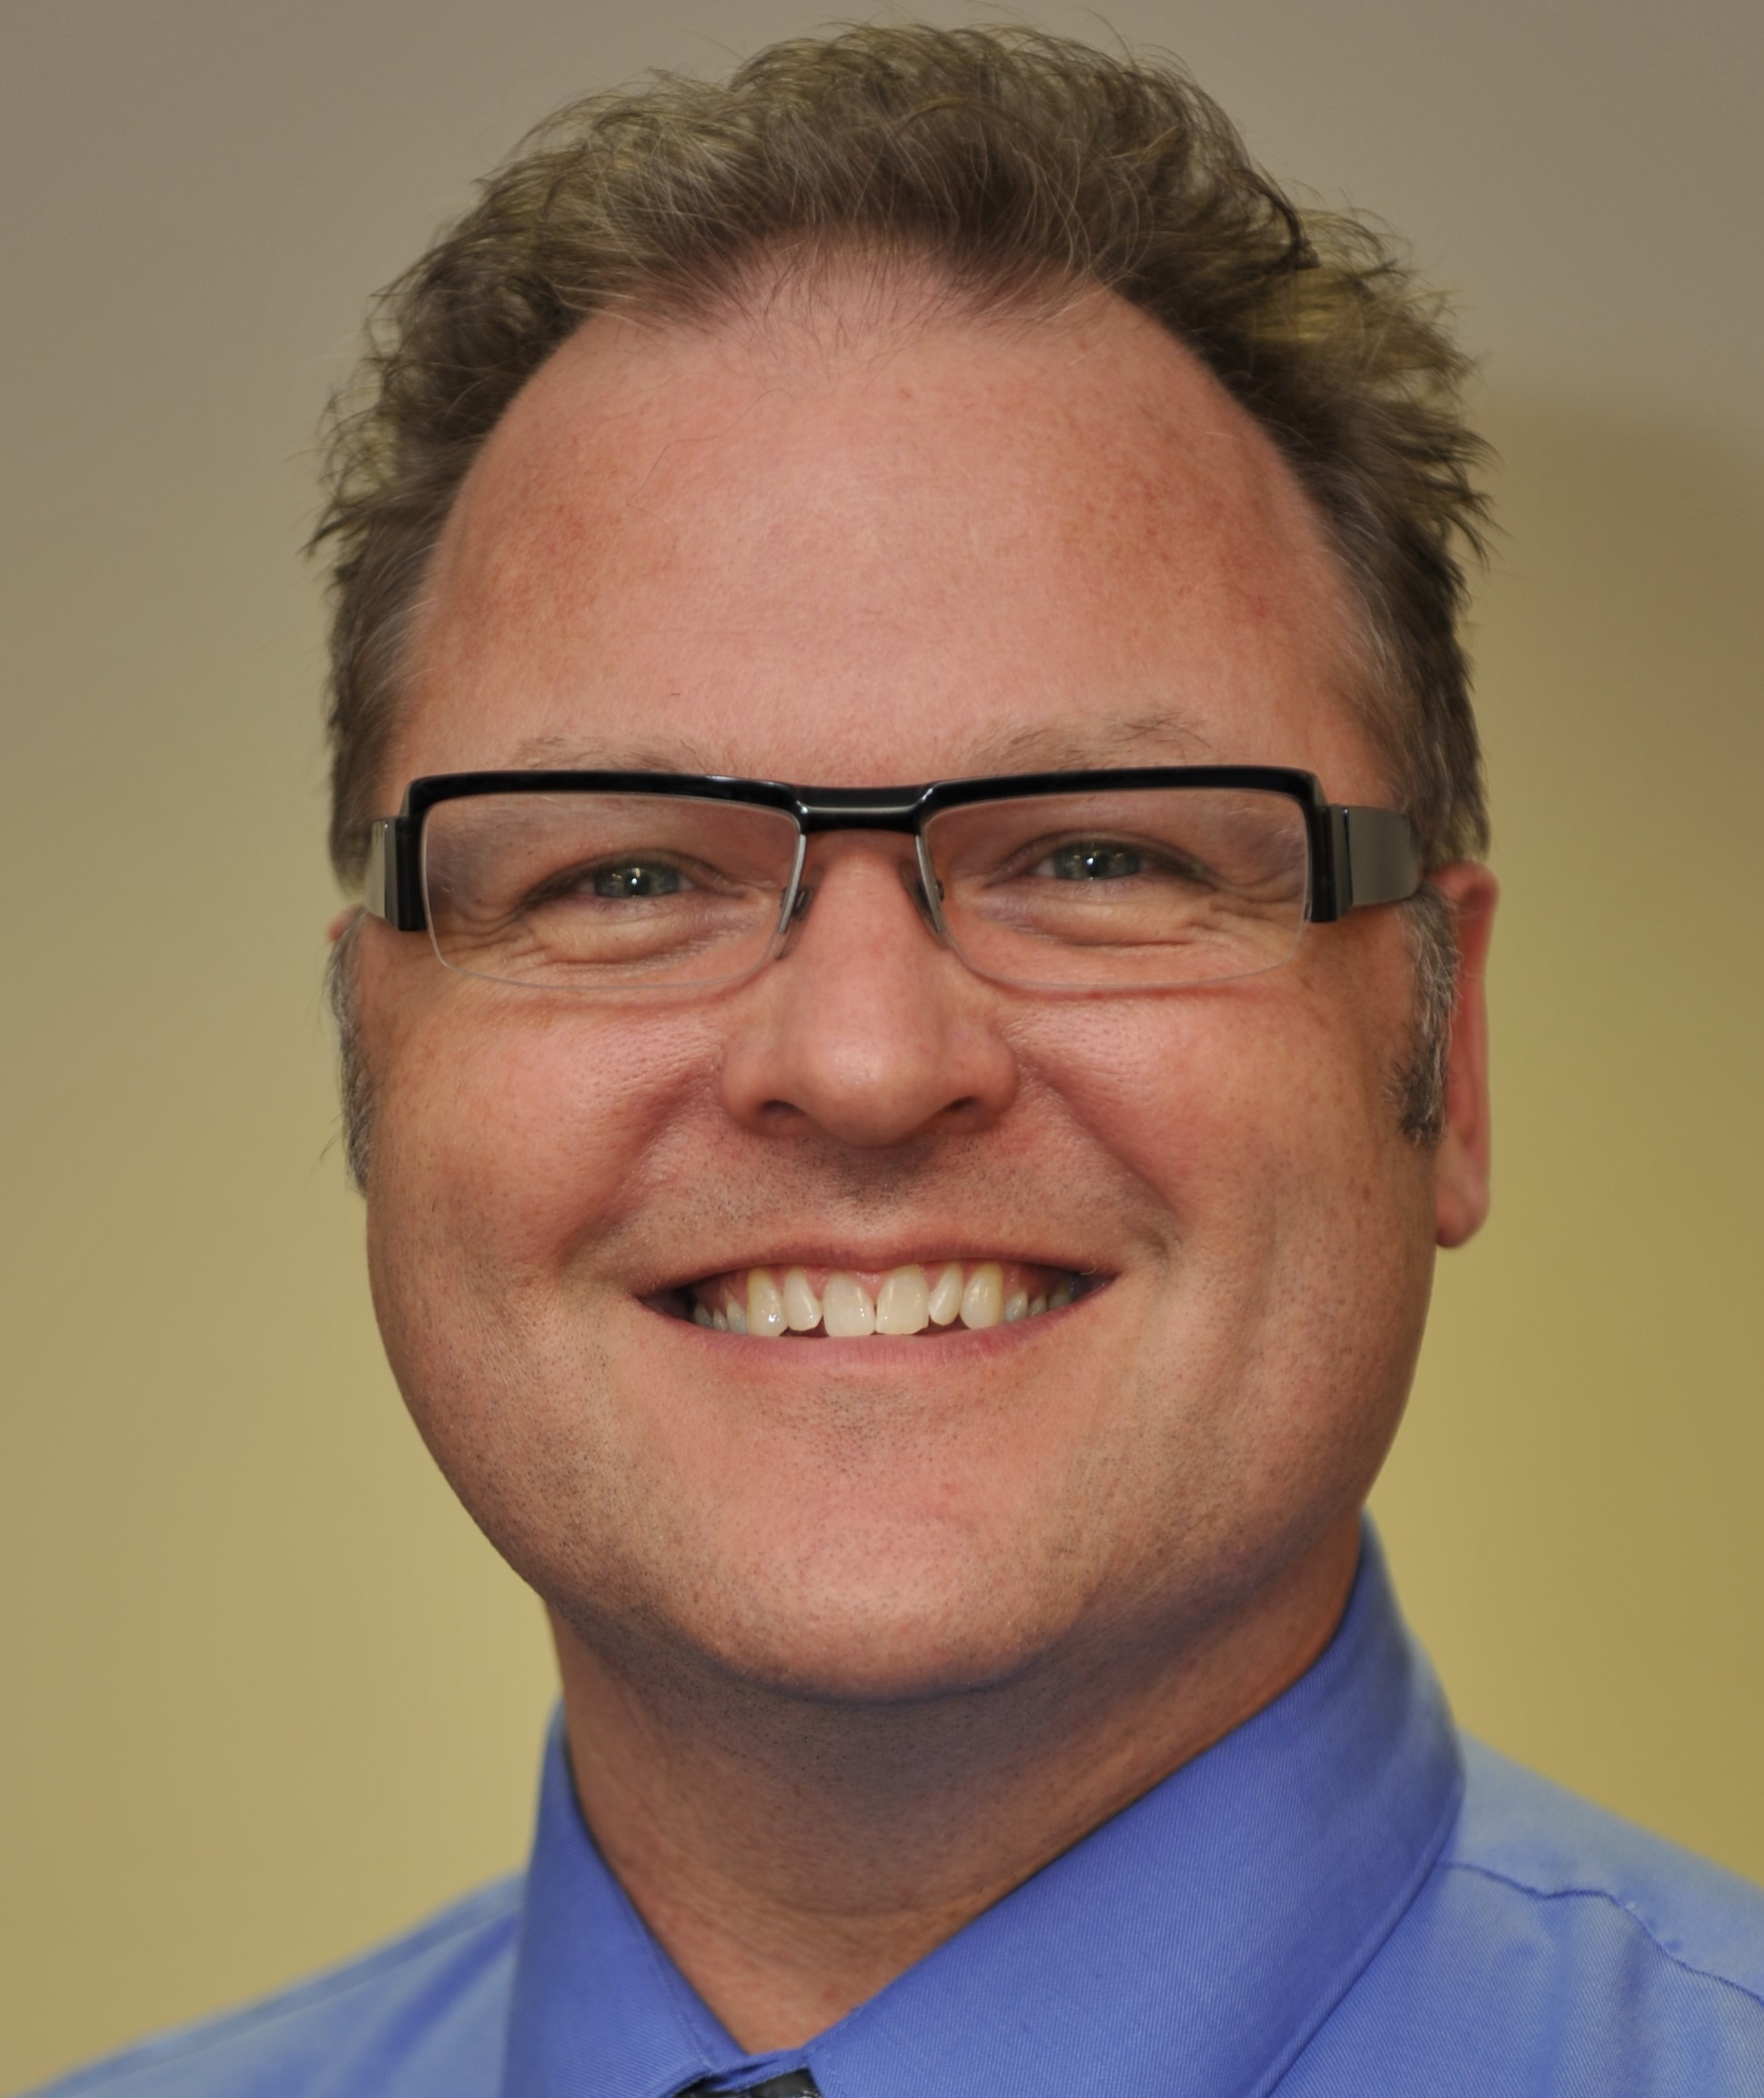 Dr. Brian Goodroad is a professor in the College of Nursing and Health Sciences at Metropolitan State University.